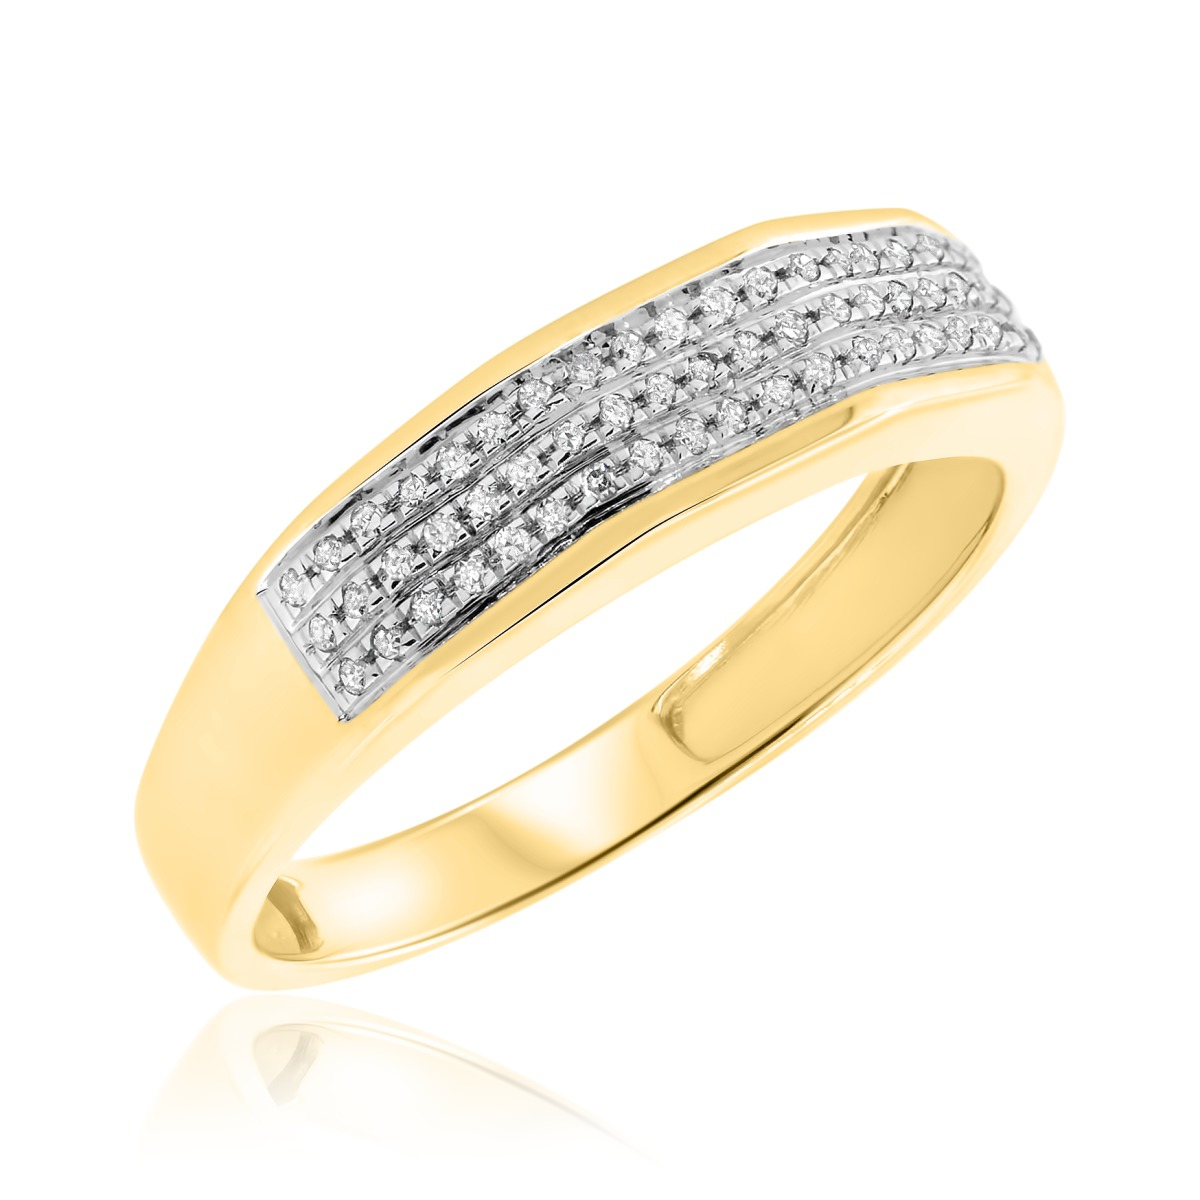 1 10 carat t w diamond ladies wedding band 10k yellow. Black Bedroom Furniture Sets. Home Design Ideas